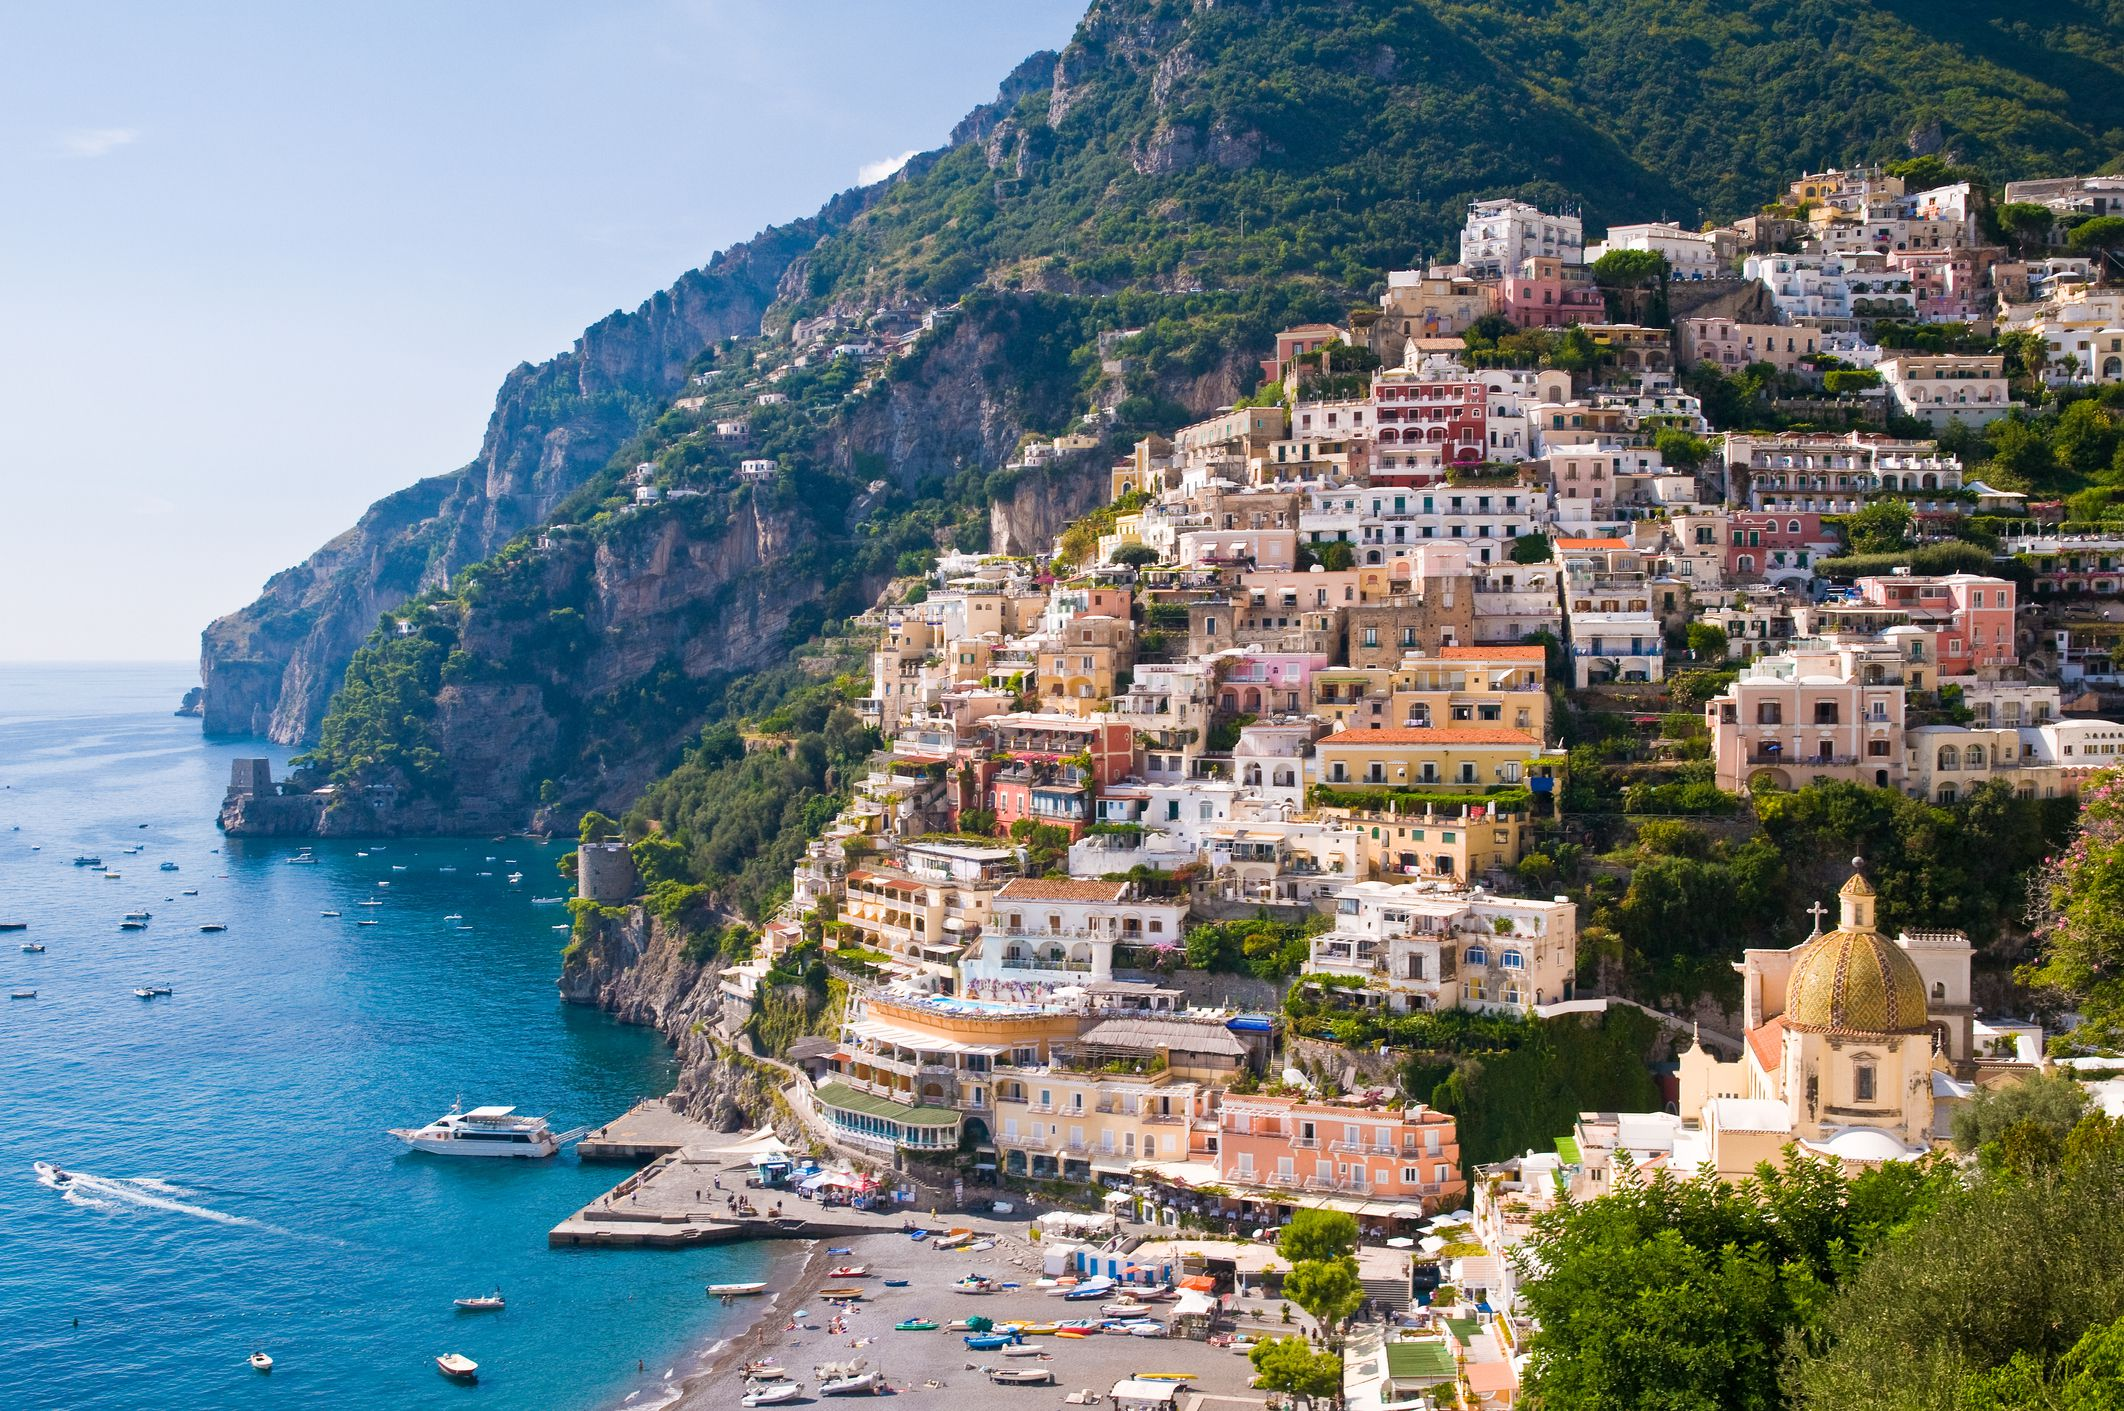 The Best Time to Visit the Amalfi Coast